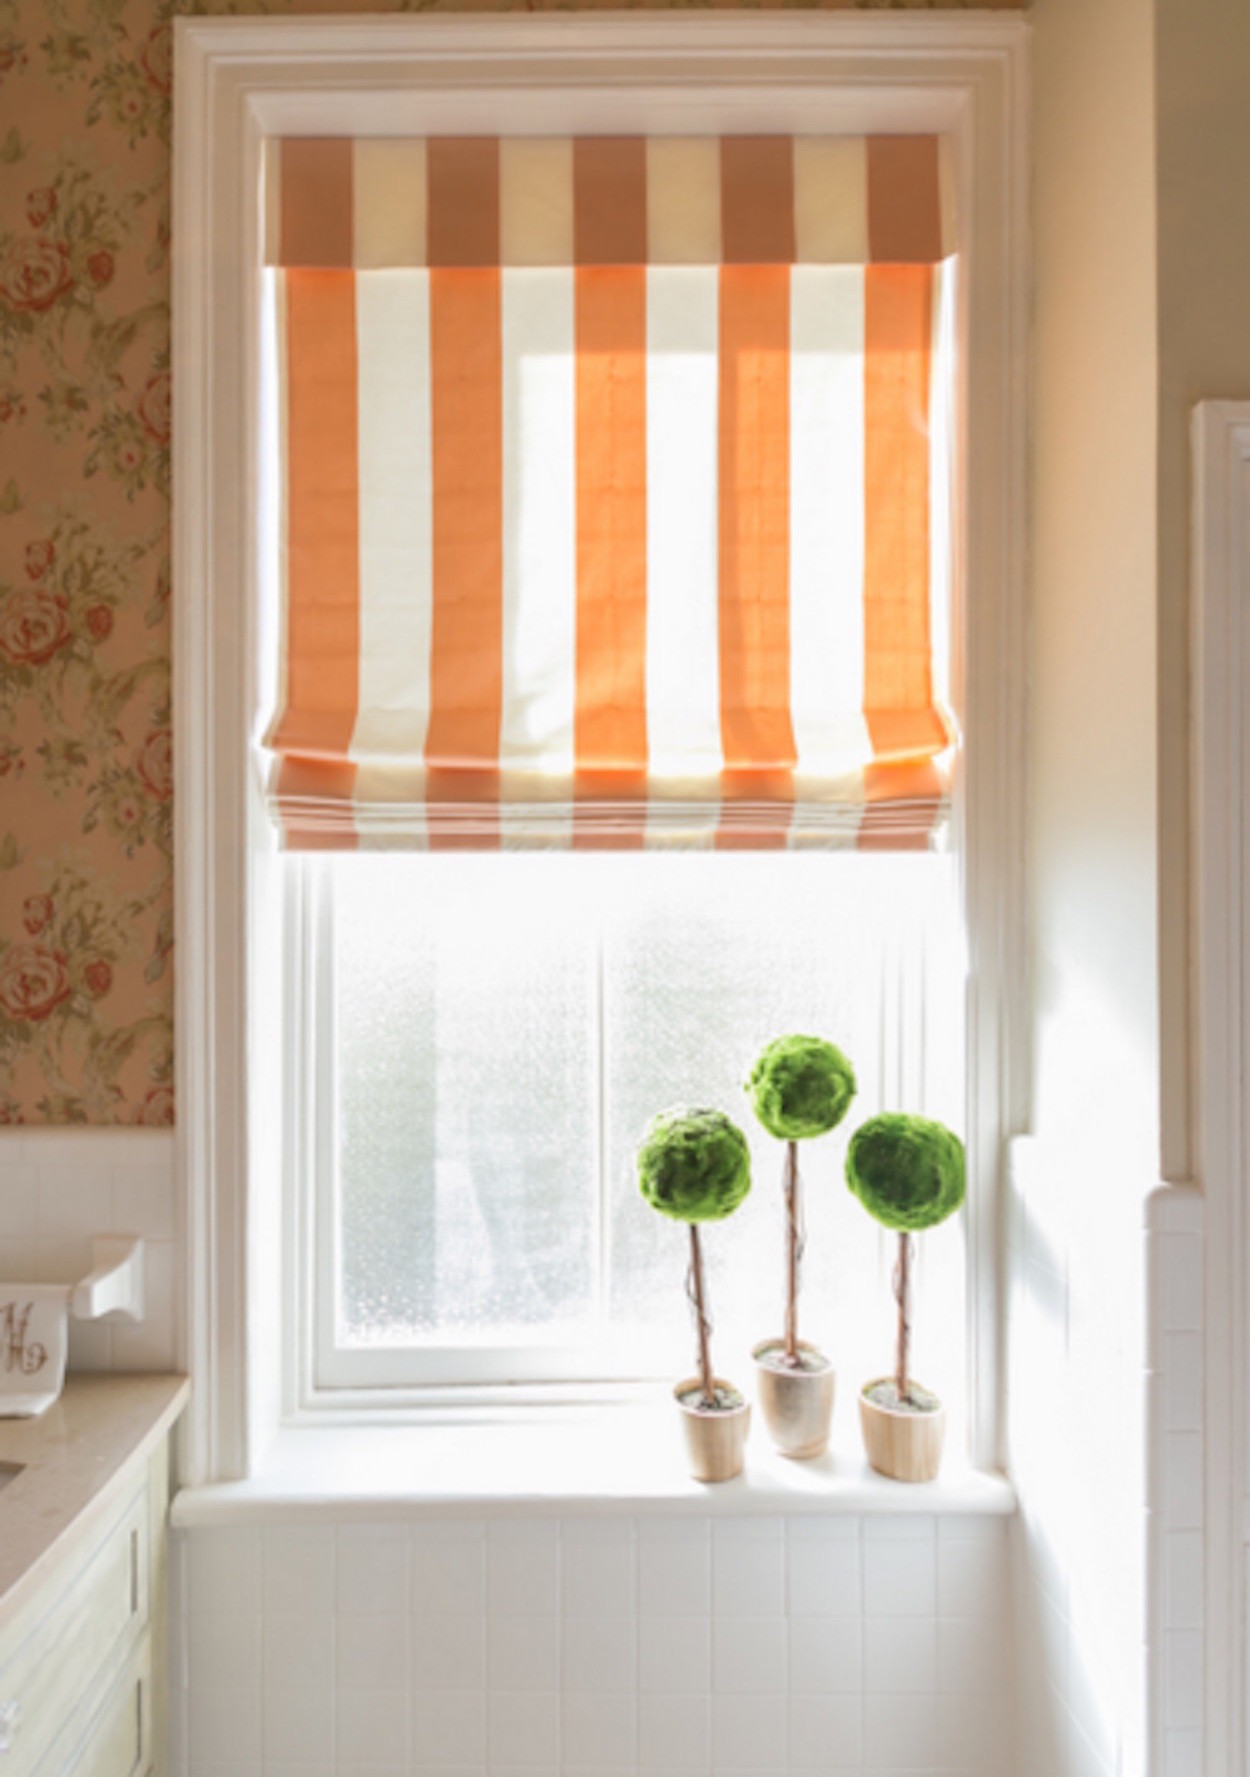 7 Different Bathroom Window Treatments You Might Not Have Thought Of ...